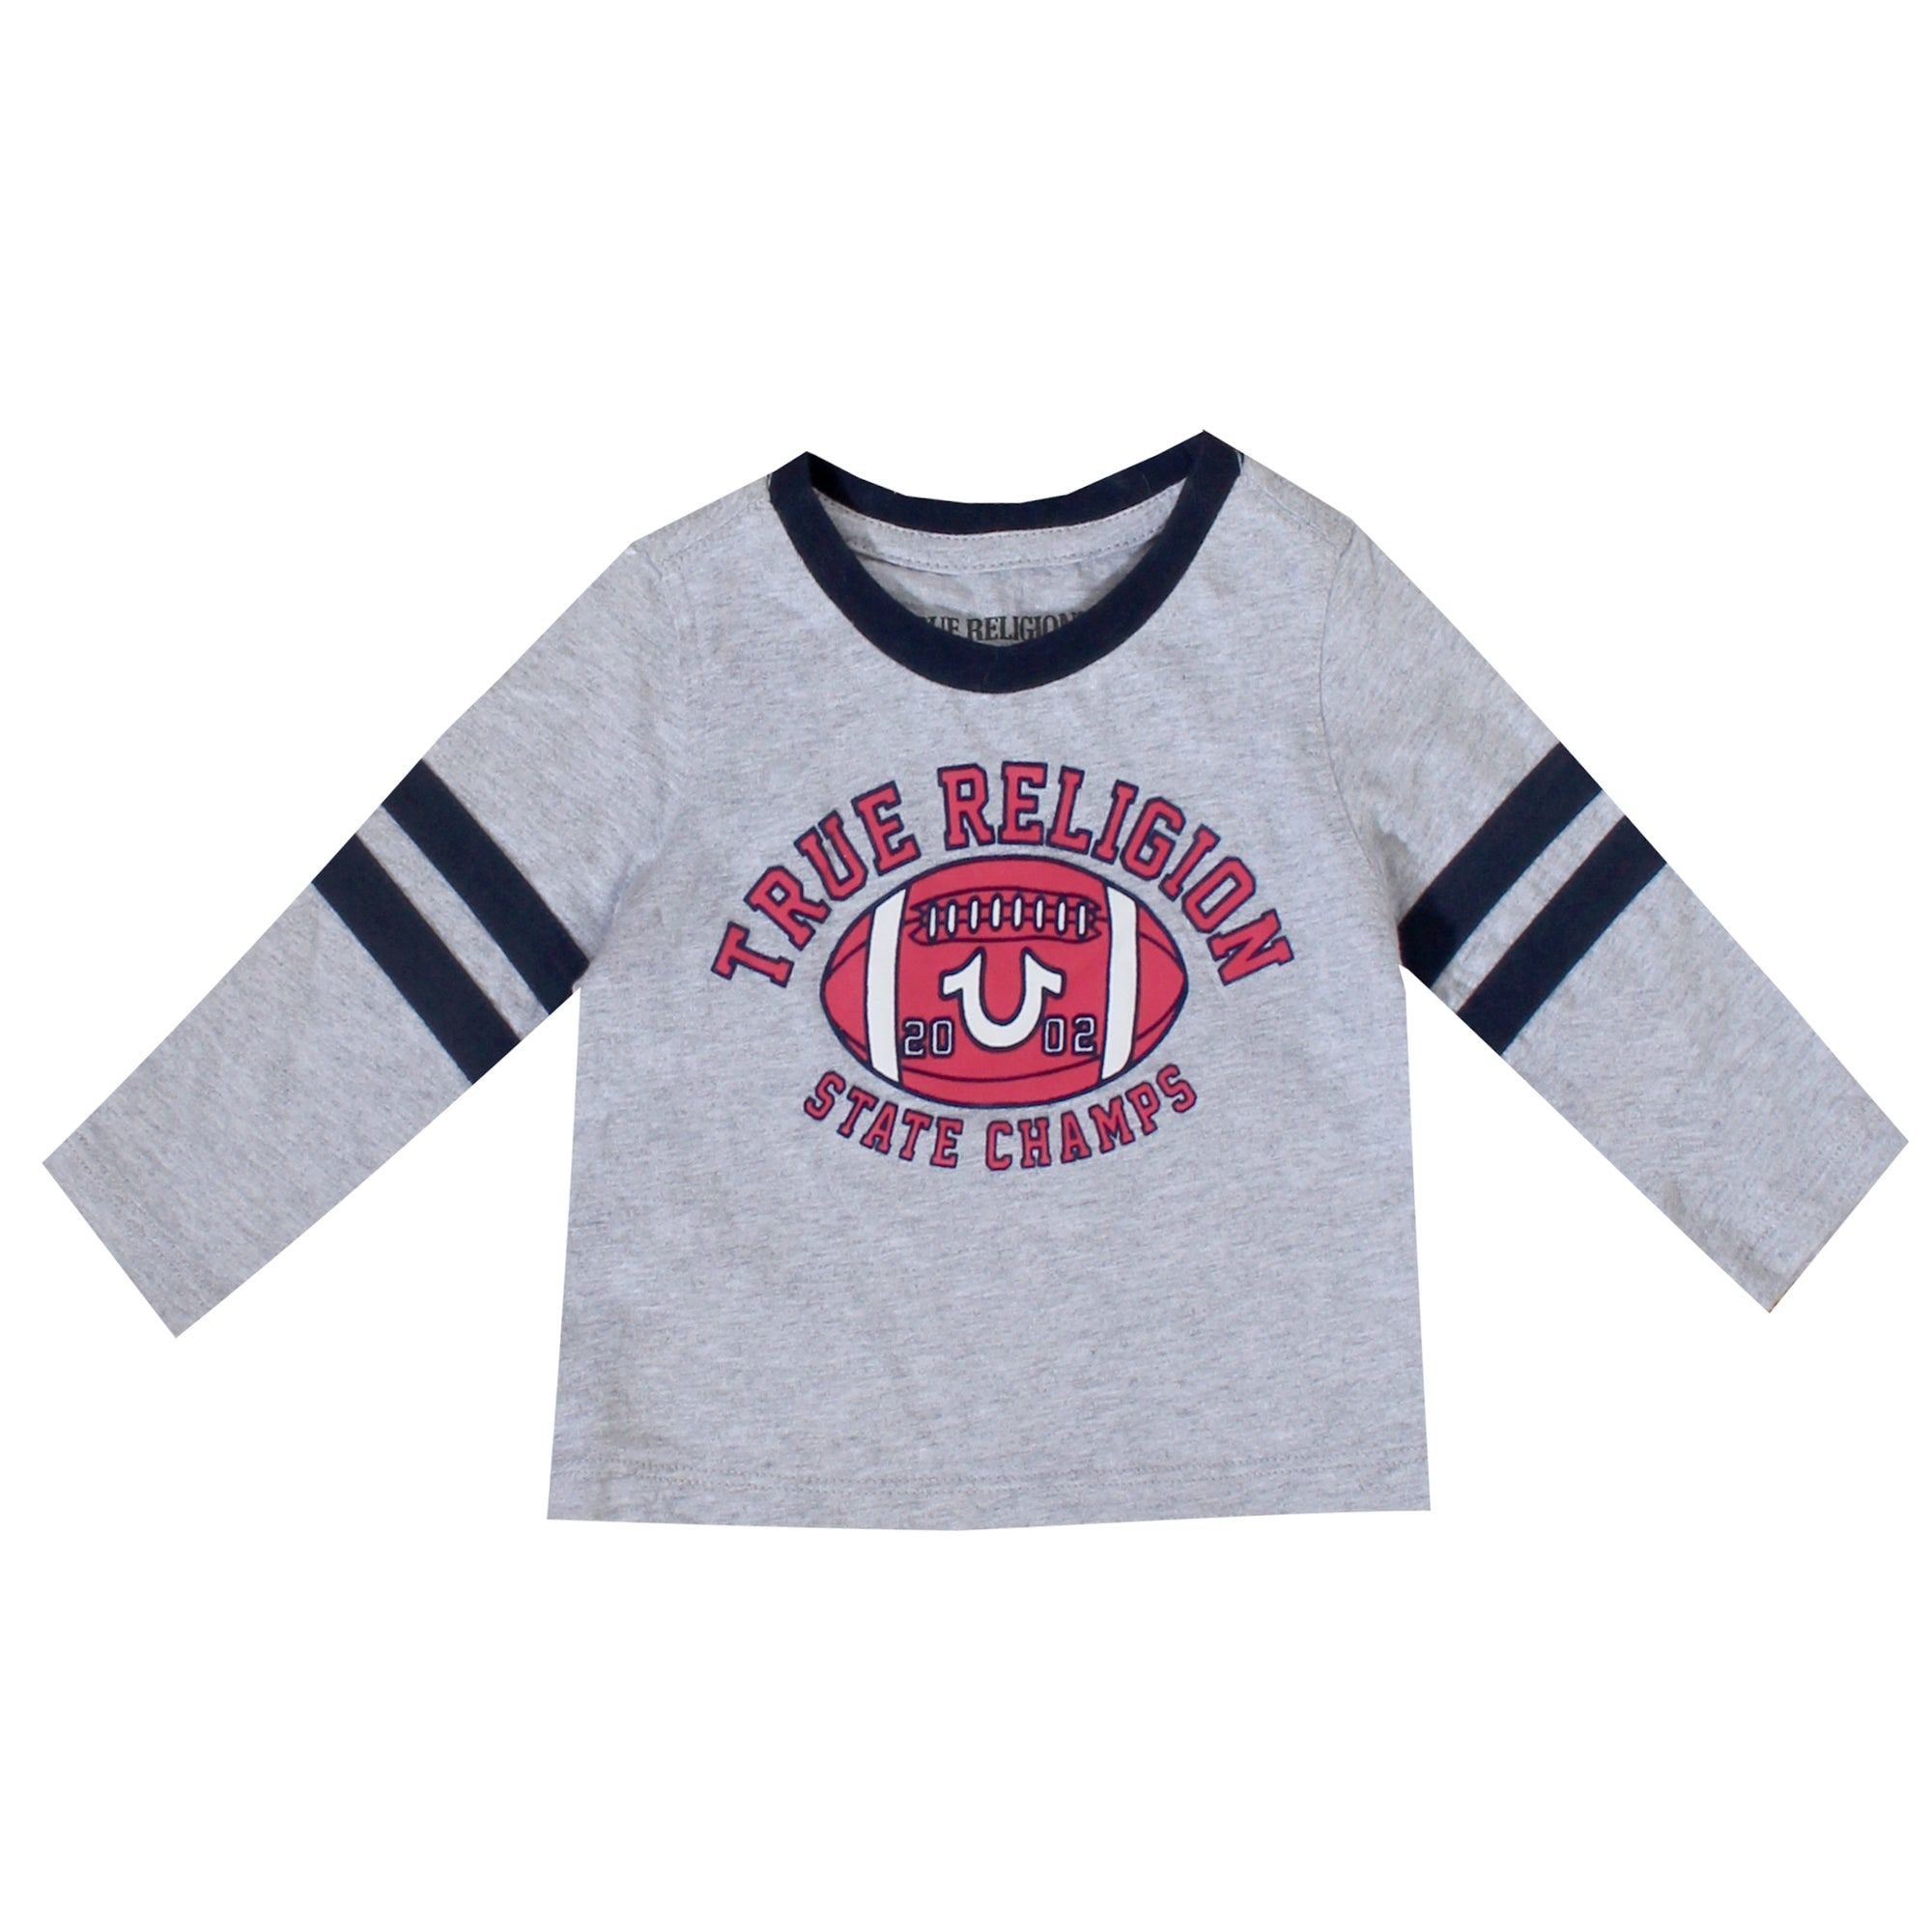 Kids True Religion Long Sleeve State Champs Shirt